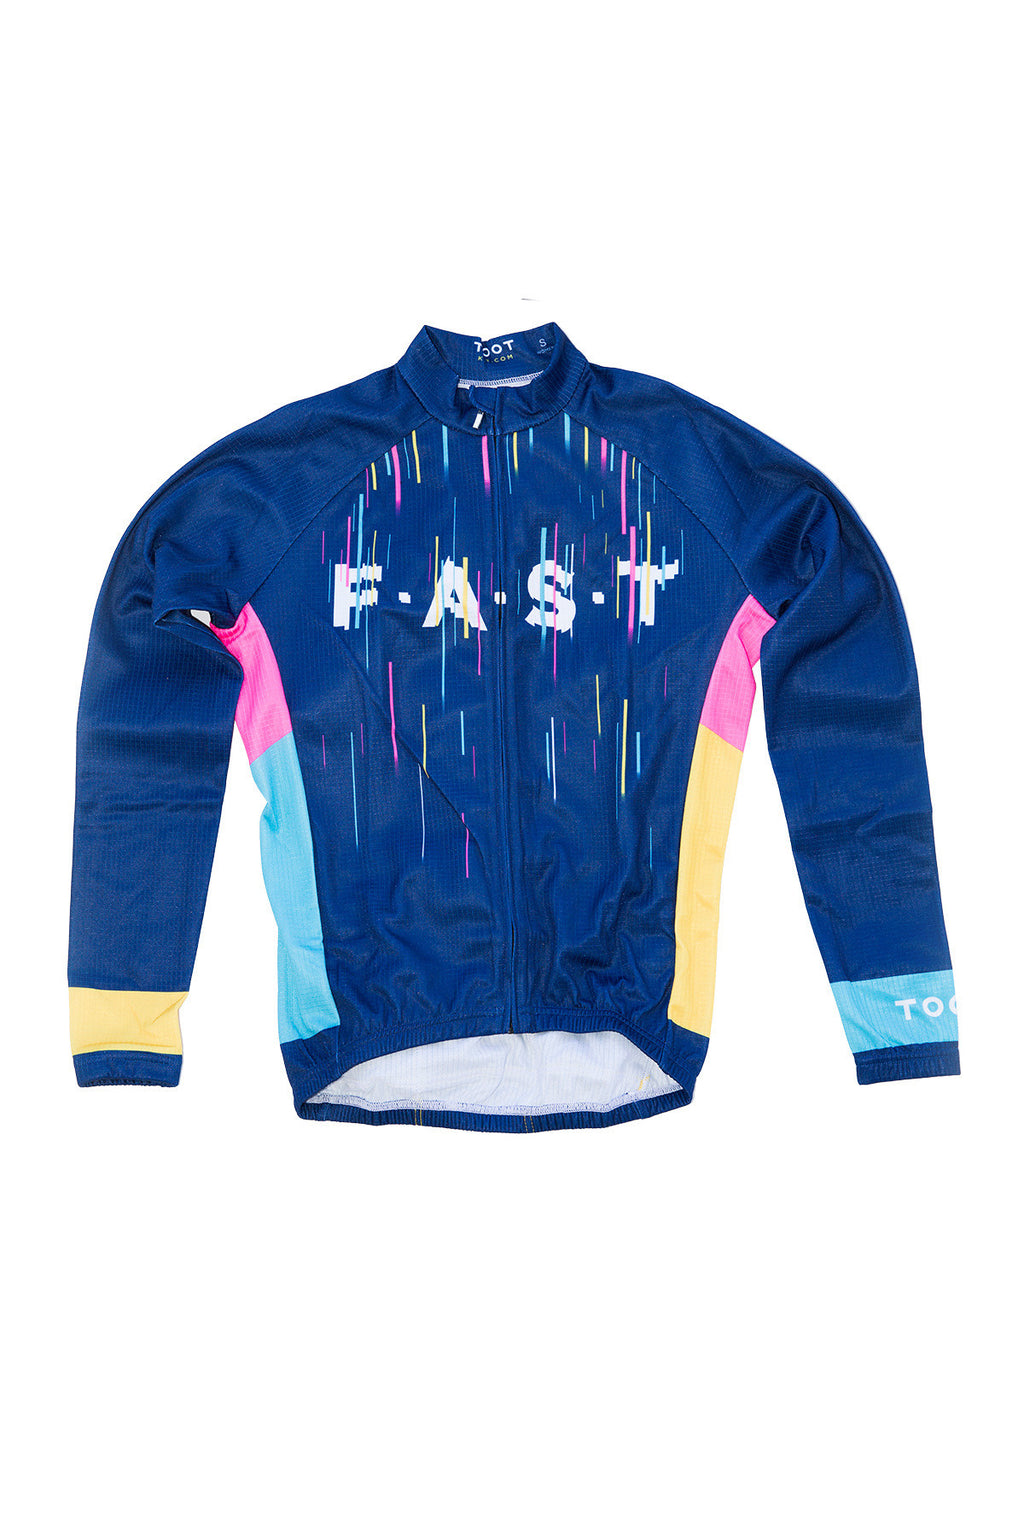 F.A.S.T - SUPPORTERS LONG-SLEEVE JERSEY - NAMED